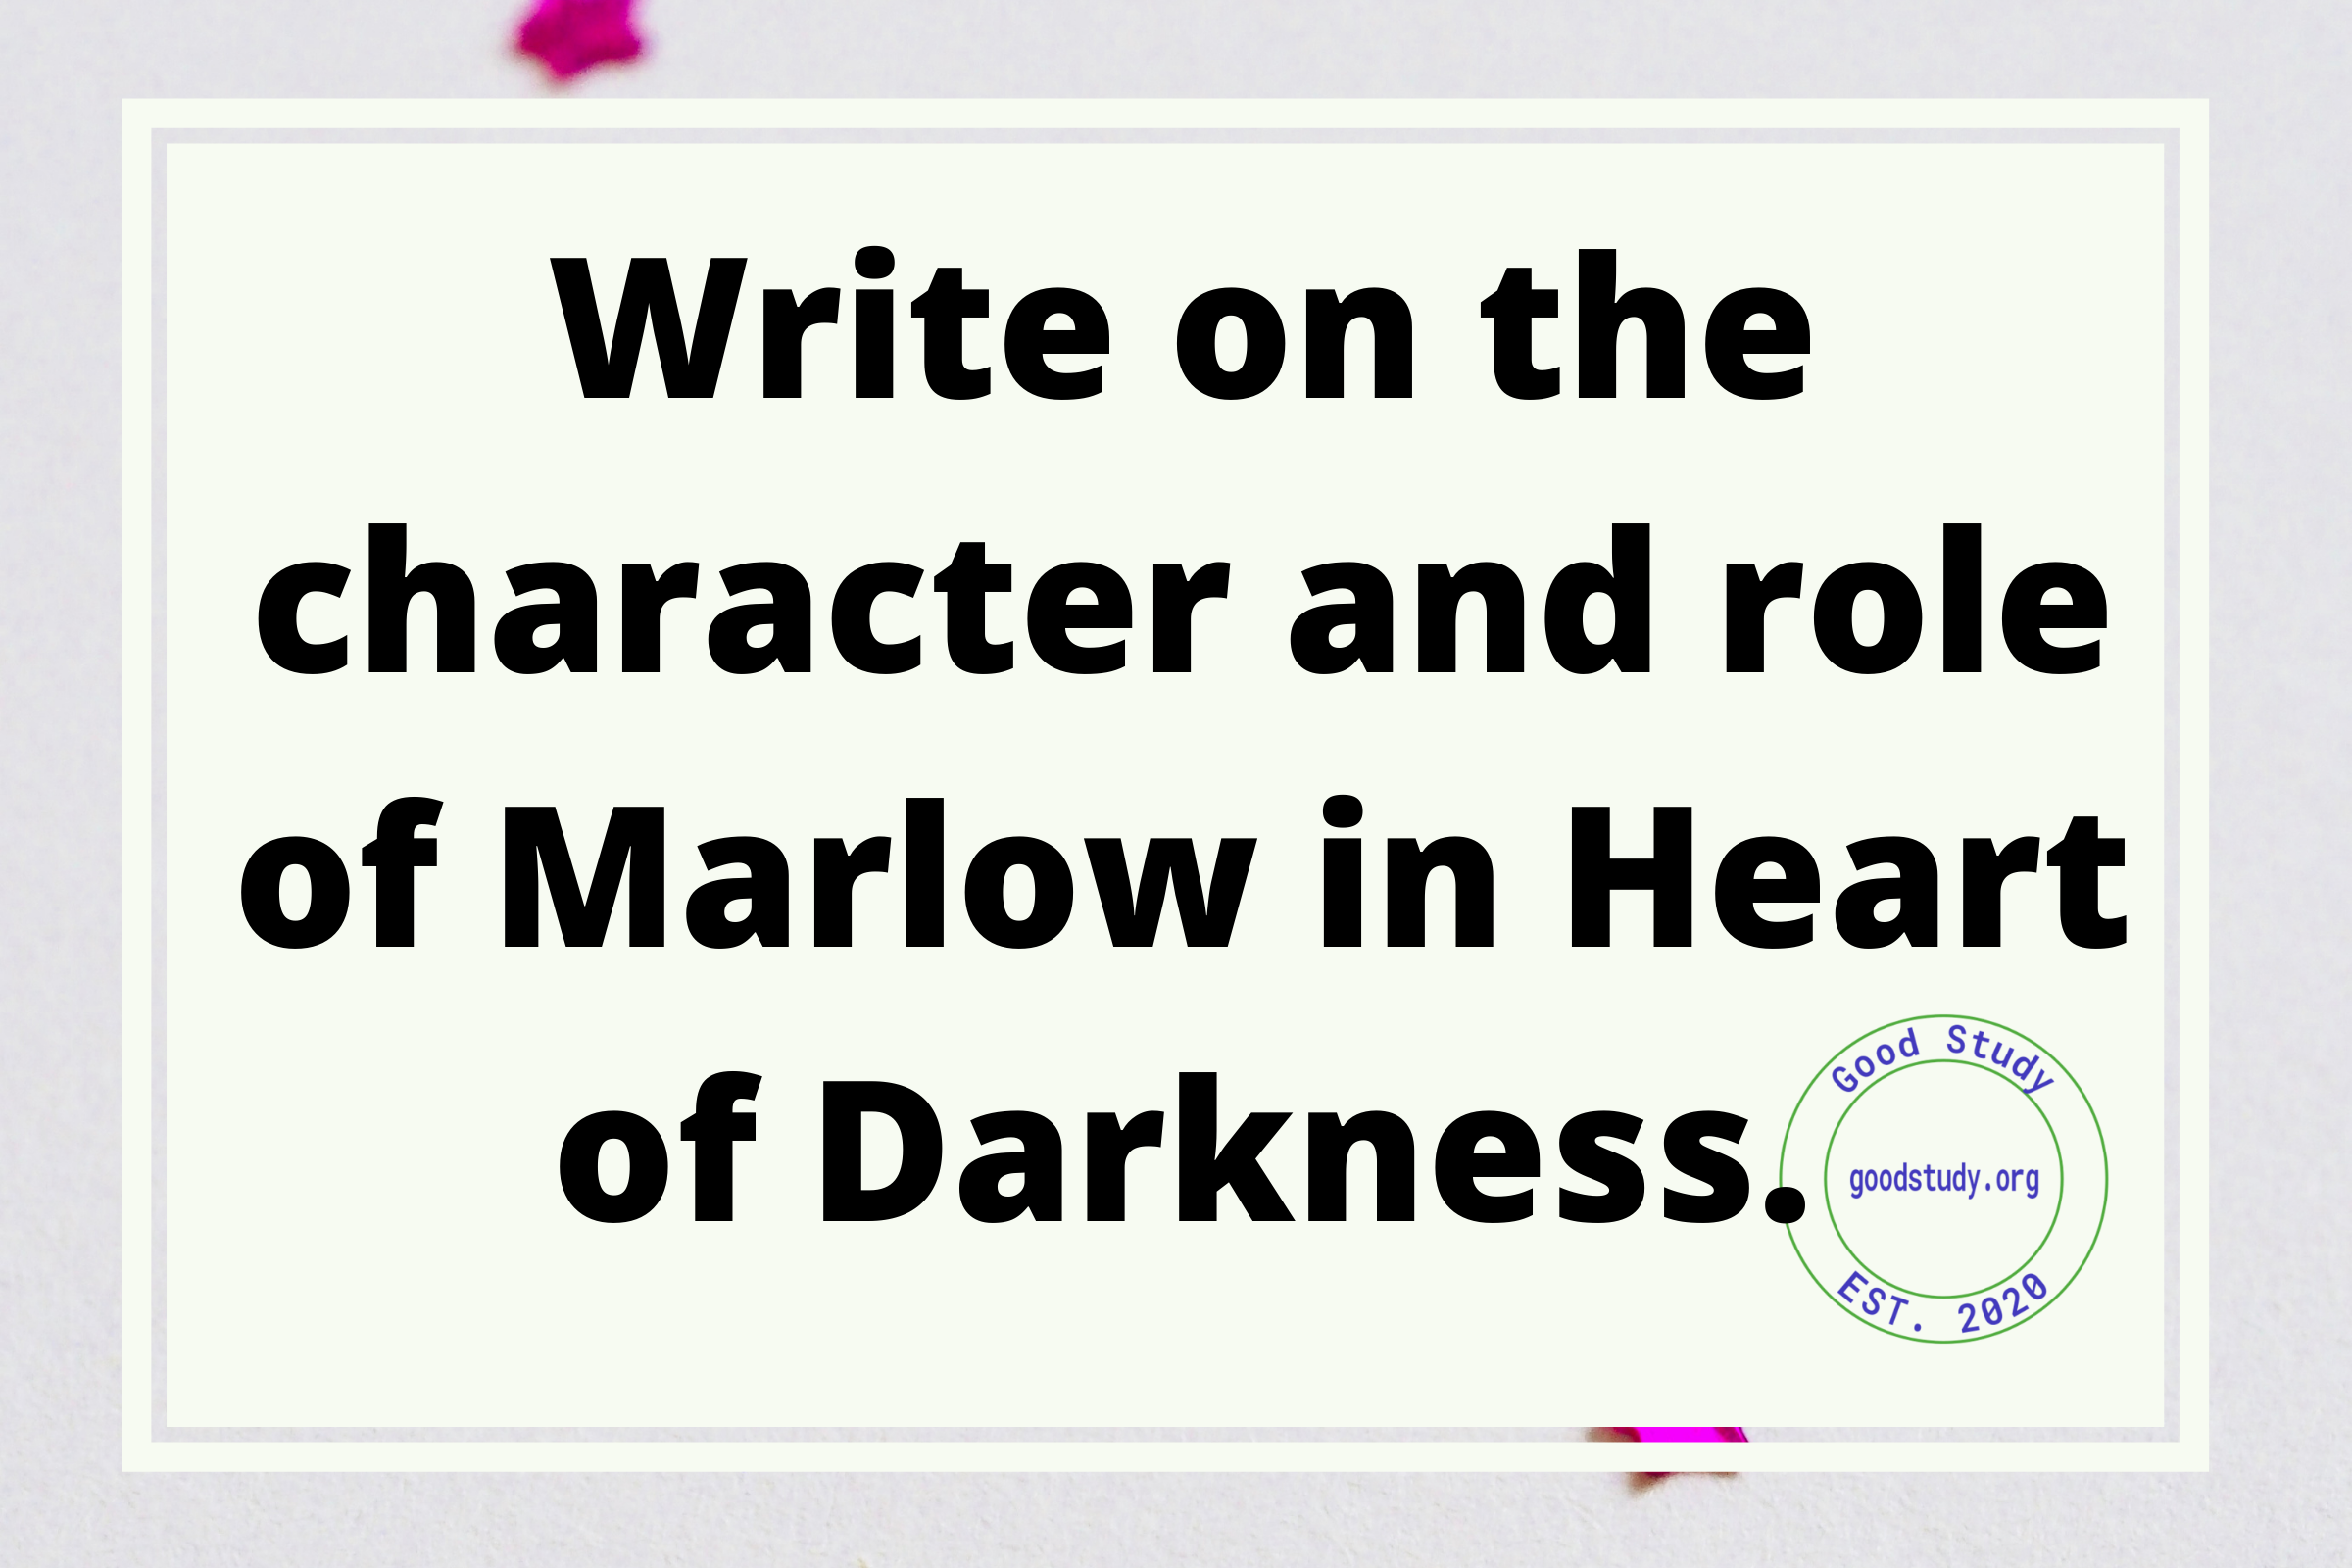 Write on the character and role of Marlow in Heart of Darkness.